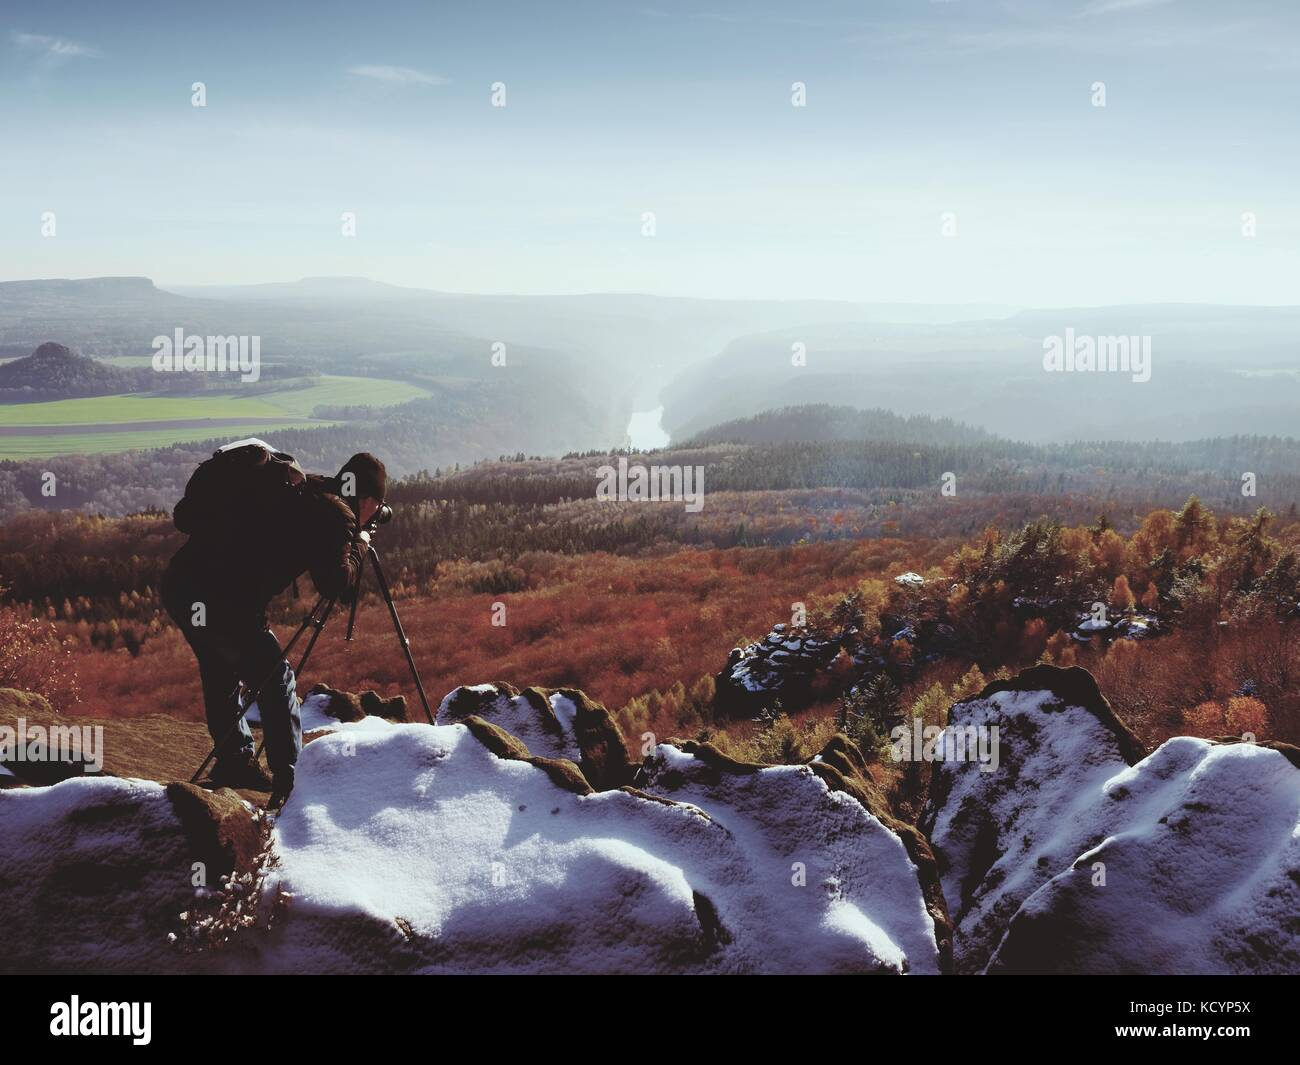 Professional photographer takes photos with mirror camera and tripod on snowy peak. Dreamy fogy landscape, spring - Stock Image